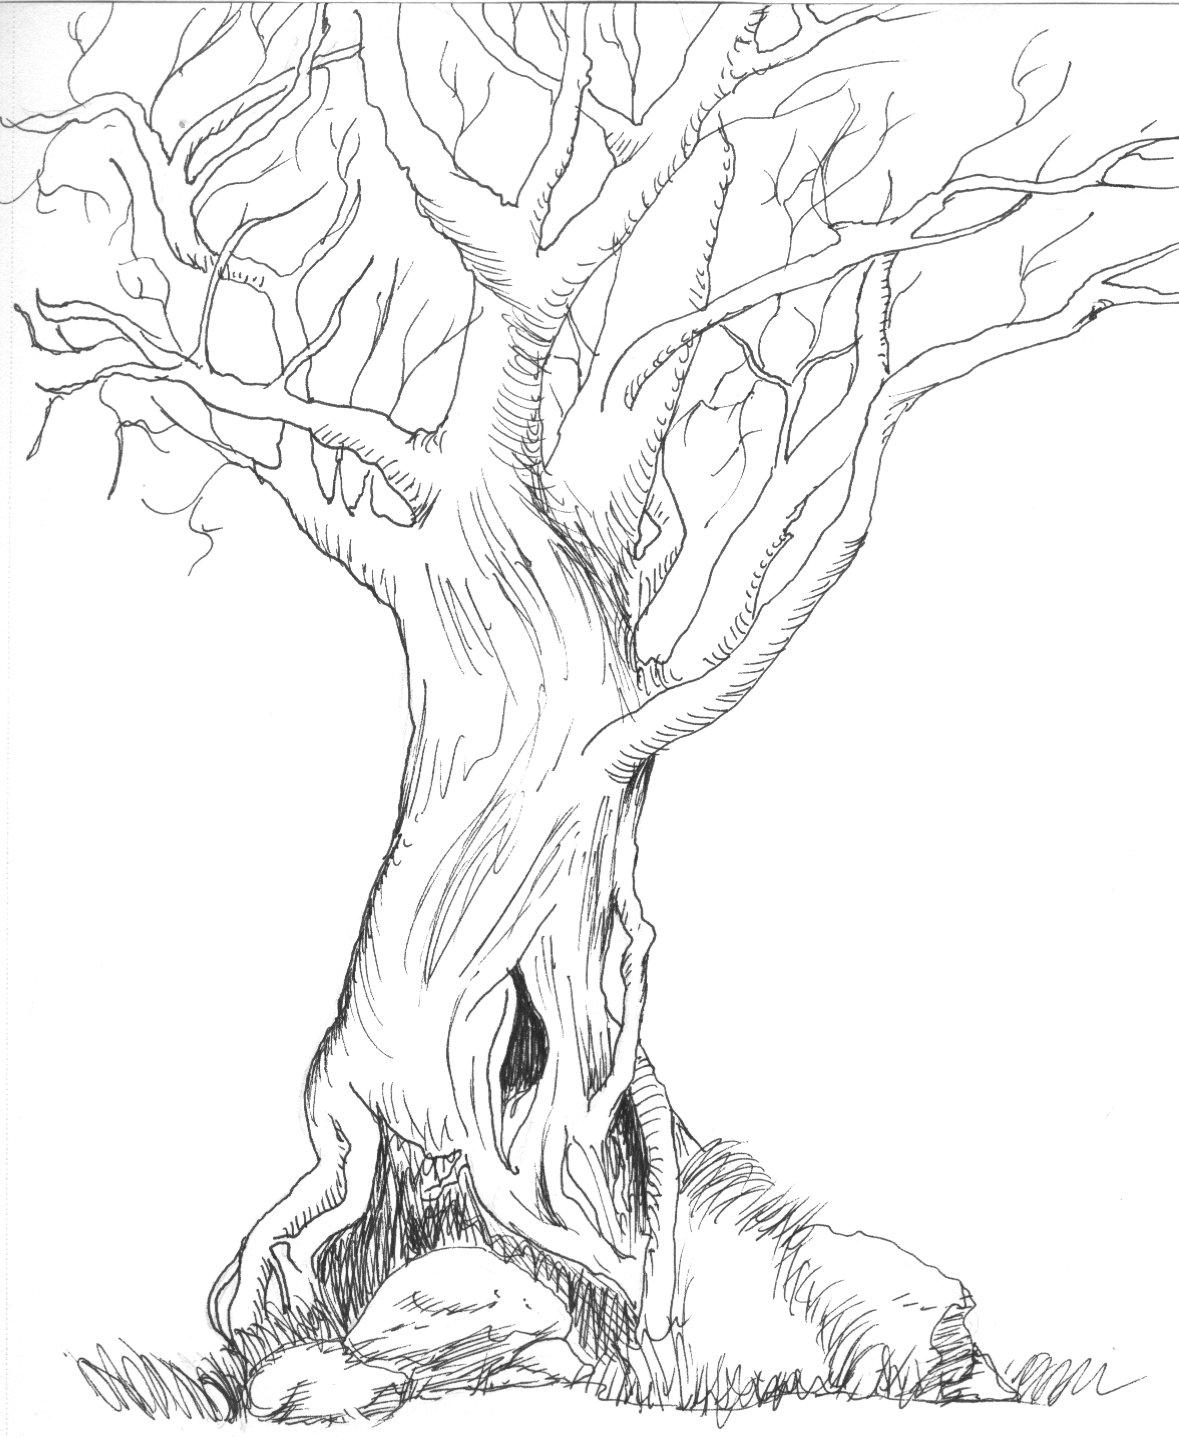 the old evil tree by myvoicesrloudest on DeviantArt